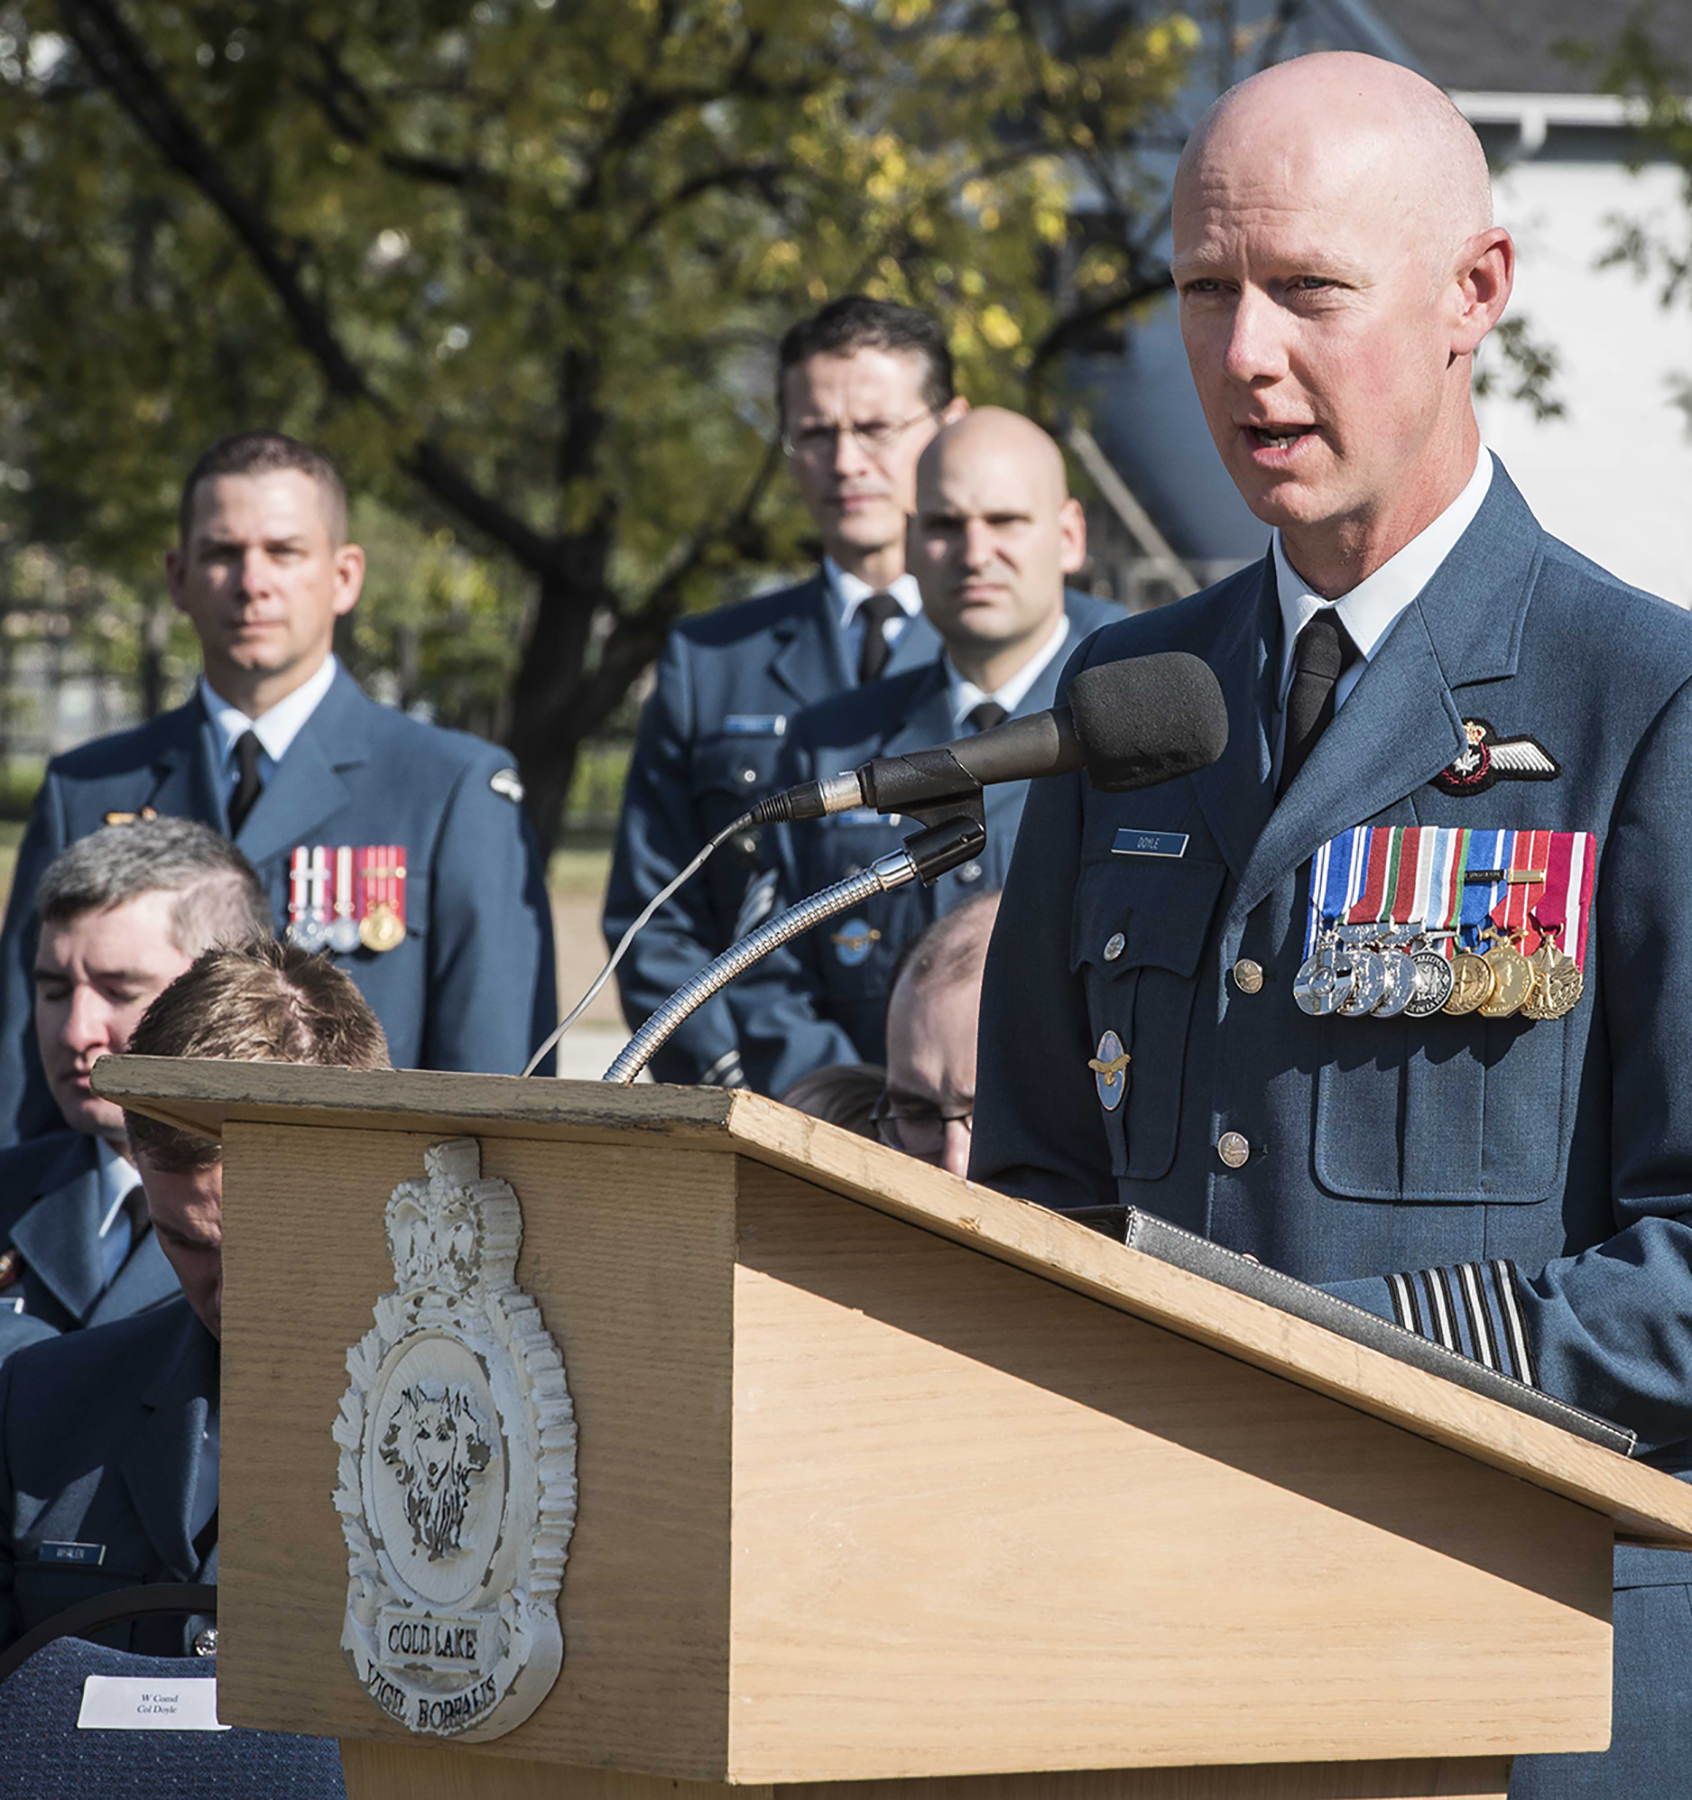 Reviewing officer Colonel Paul Doyle, wing commander, 4 Wing Cold Lake, Alberta, addresses attendees of the Battle of Britain Parade at Veterans Memorial Park marking the 77th anniversary of the Battle of Britain on September 17, 2017 in Cold Lake. PHOTO: Aviator Caitlin Paterson, 4 Wing Imaging CK09-2017-0821-004